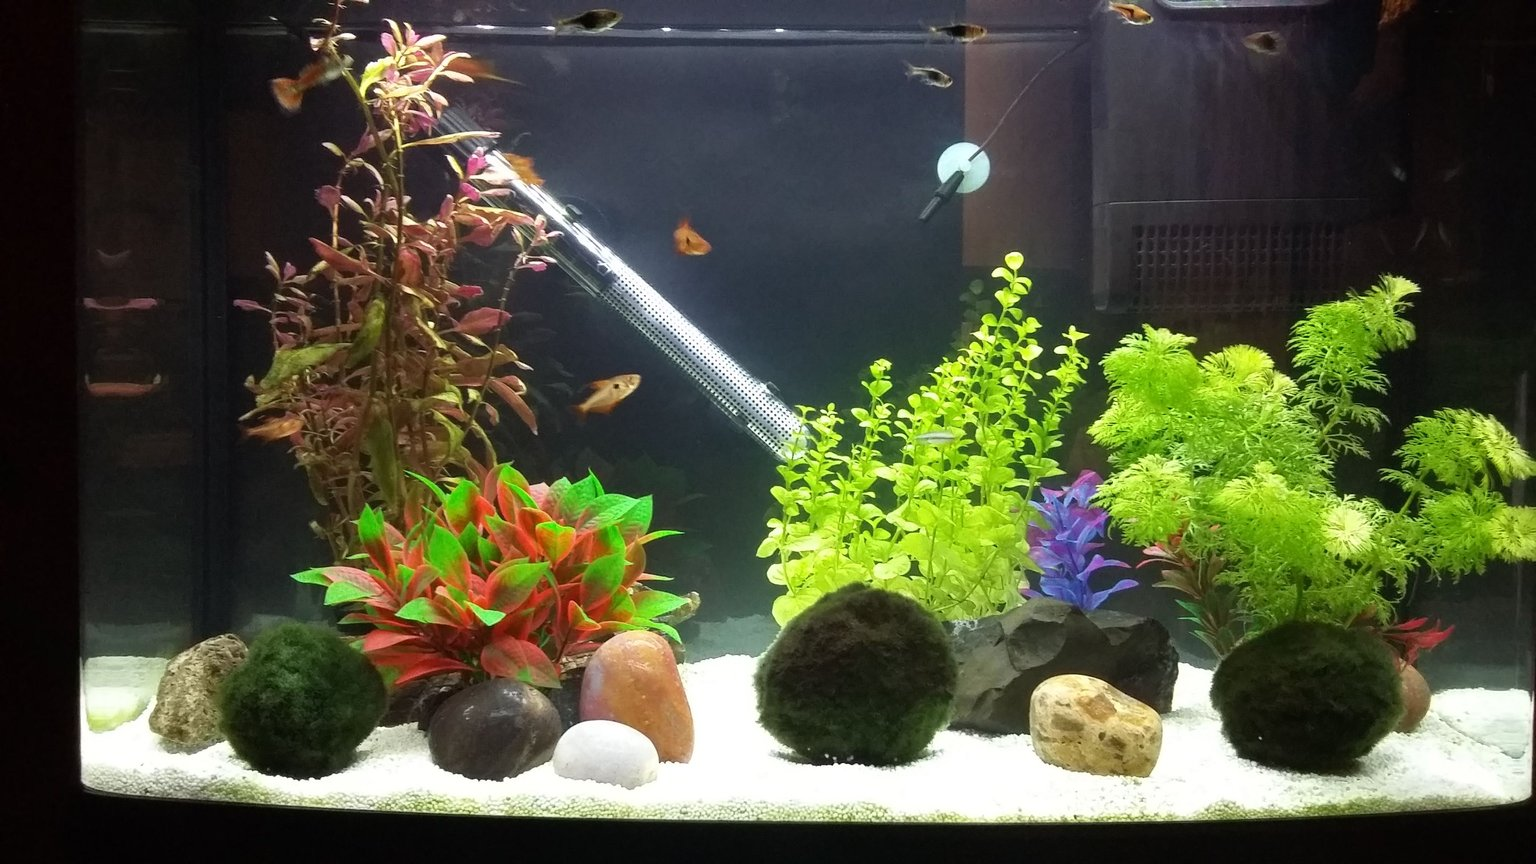 16 gallons freshwater fish tank (mostly fish and non-living decorations) - One plastic plant and weighted and potted plants and moss balls. A relatively peaceful community tank with one feisty guppy and a dive bombing red phantom.